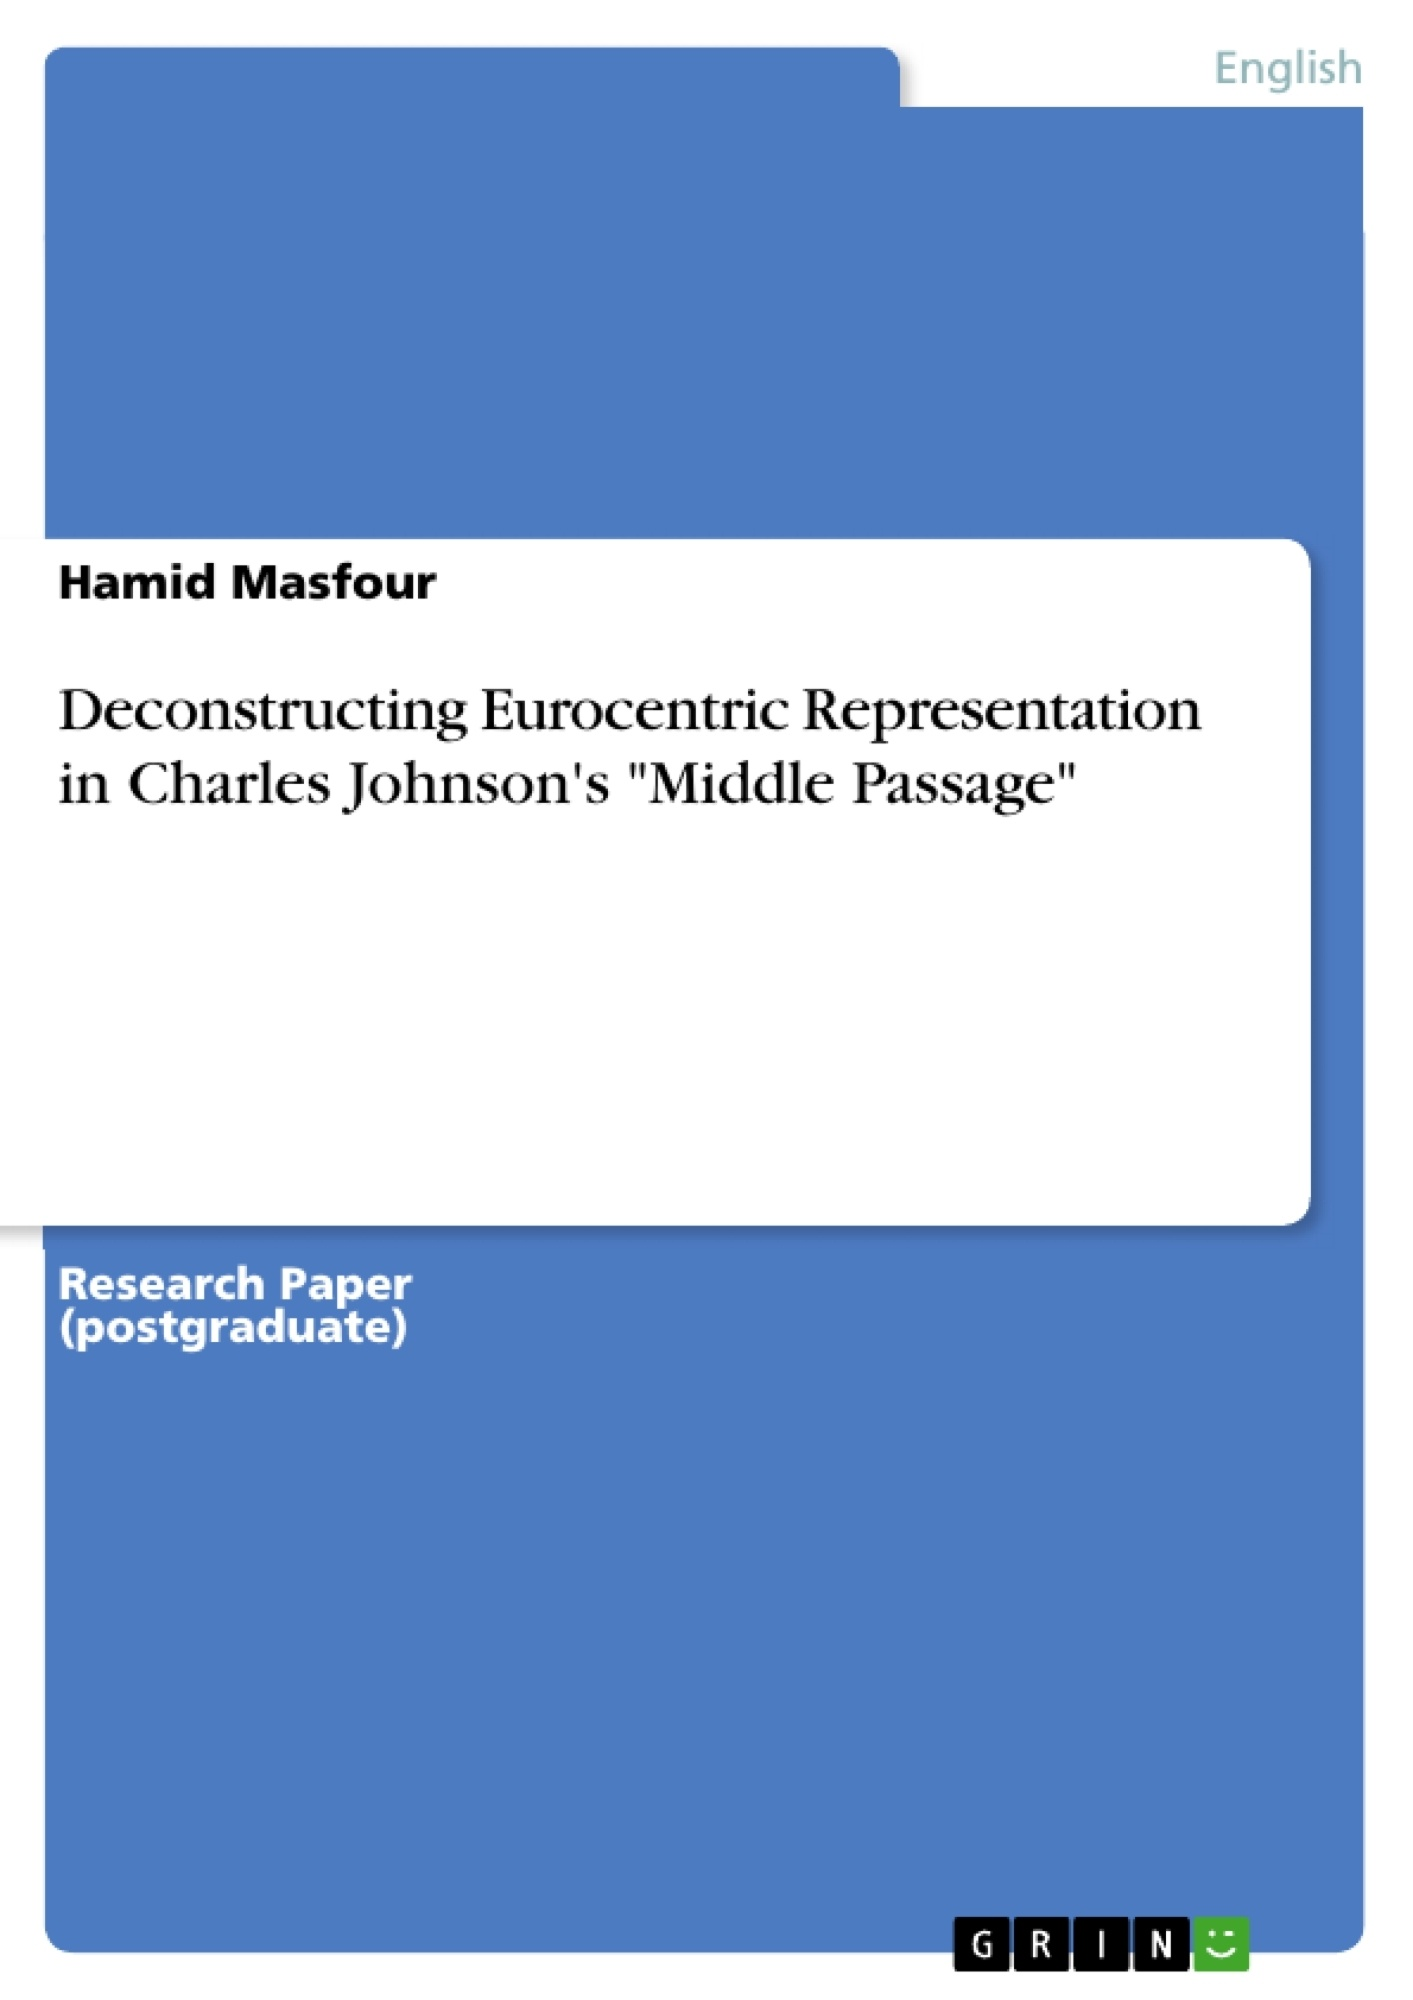 """Title: Deconstructing Eurocentric Representation in Charles Johnson's """"Middle Passage"""""""